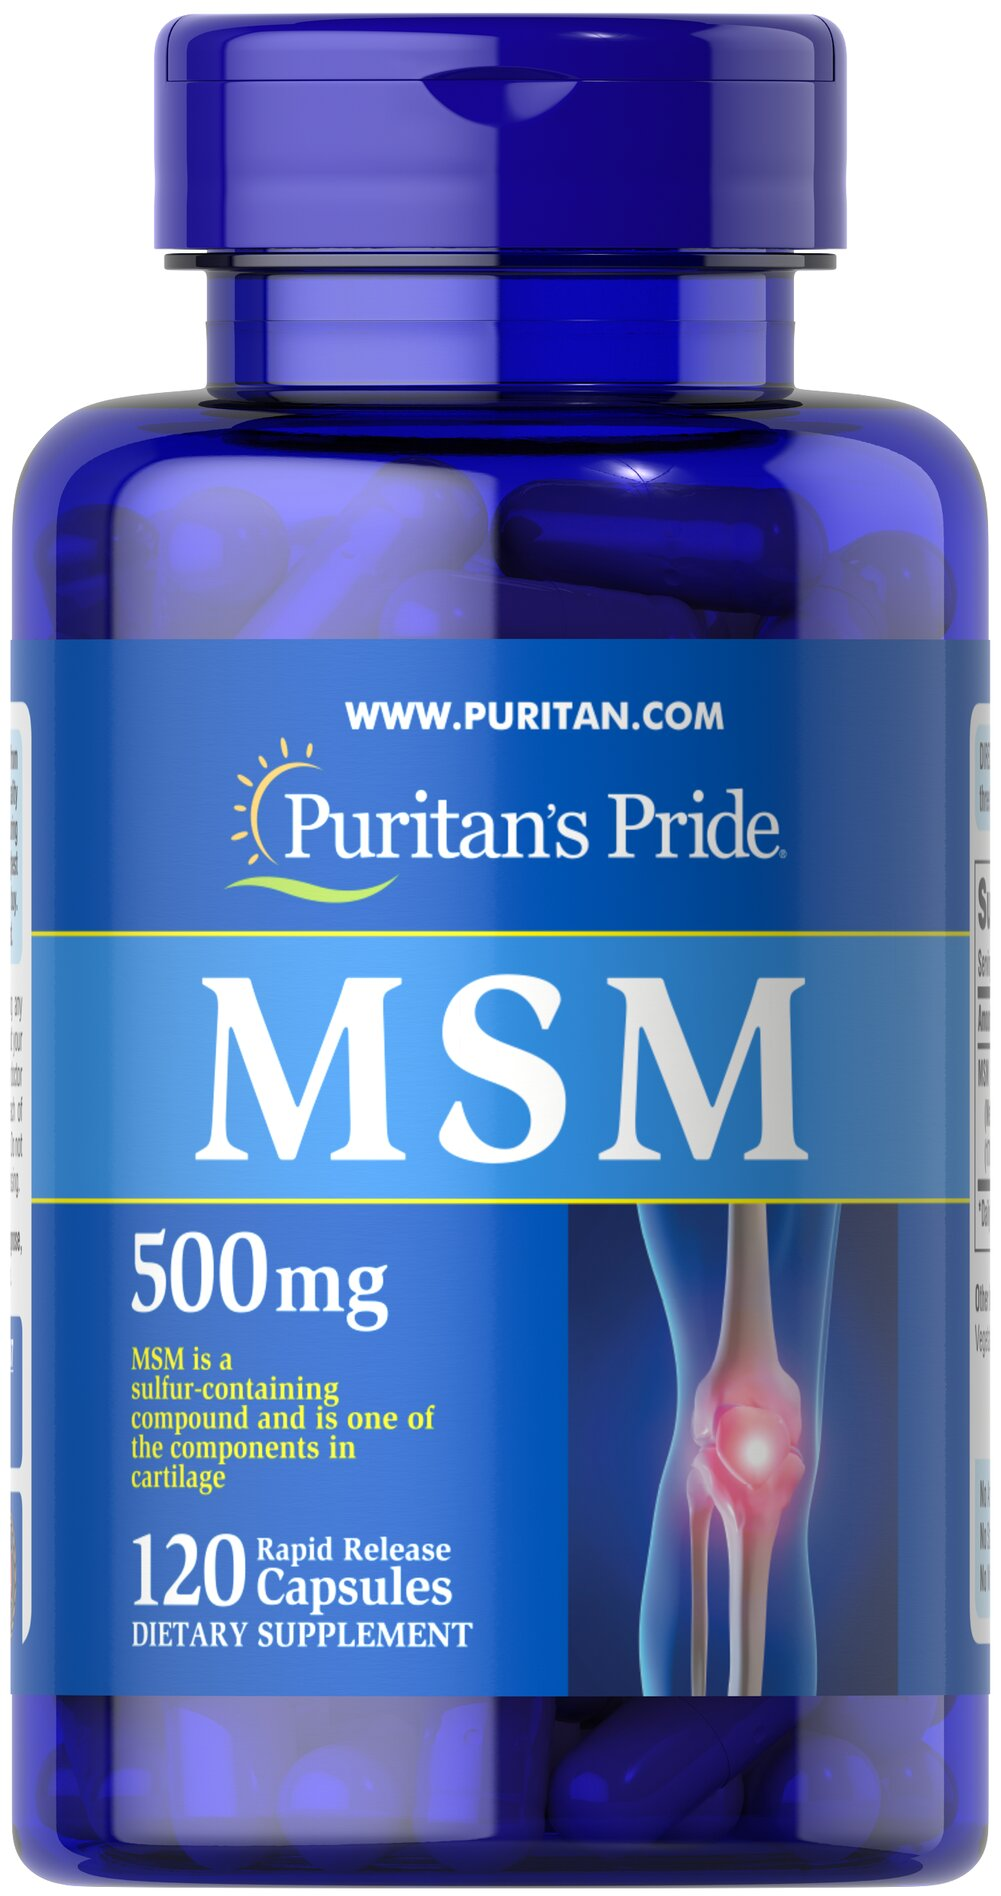 MSM 500 mg <p><b>Methylsulfonylmethane (MSM)</b> is a natural source of sulfur, one of the major building blocks of glycosaminoglycans.** Glycosaminoglycans are key structural components in cartilage and play an important role in the maintenance of joint cartilage. ** </p> 120 Capsules 500 mg $9.99